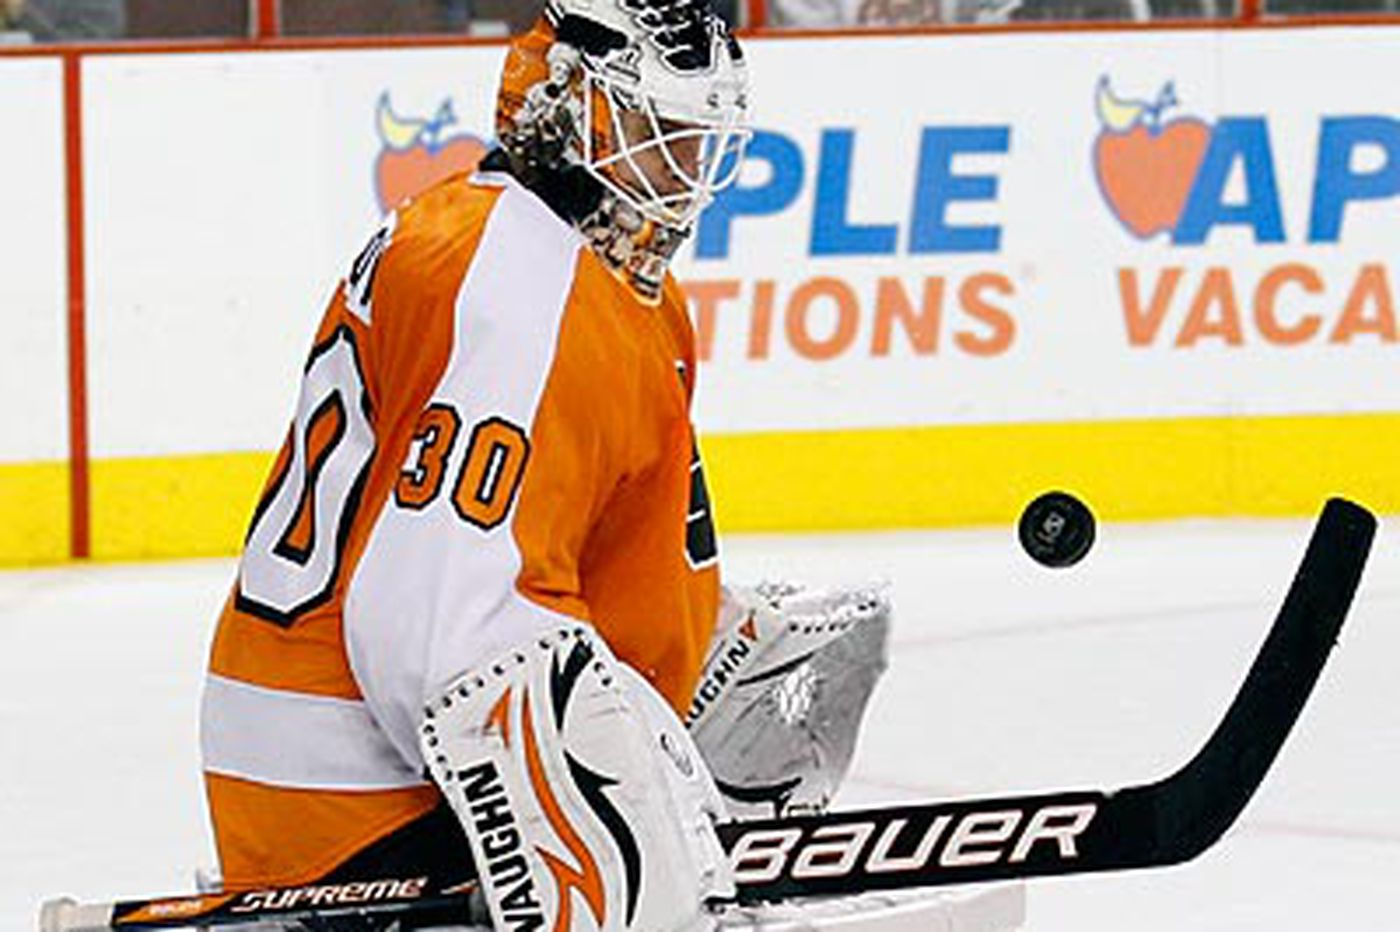 Bryzgalov trying to find his groove as the Flyers' new goalie